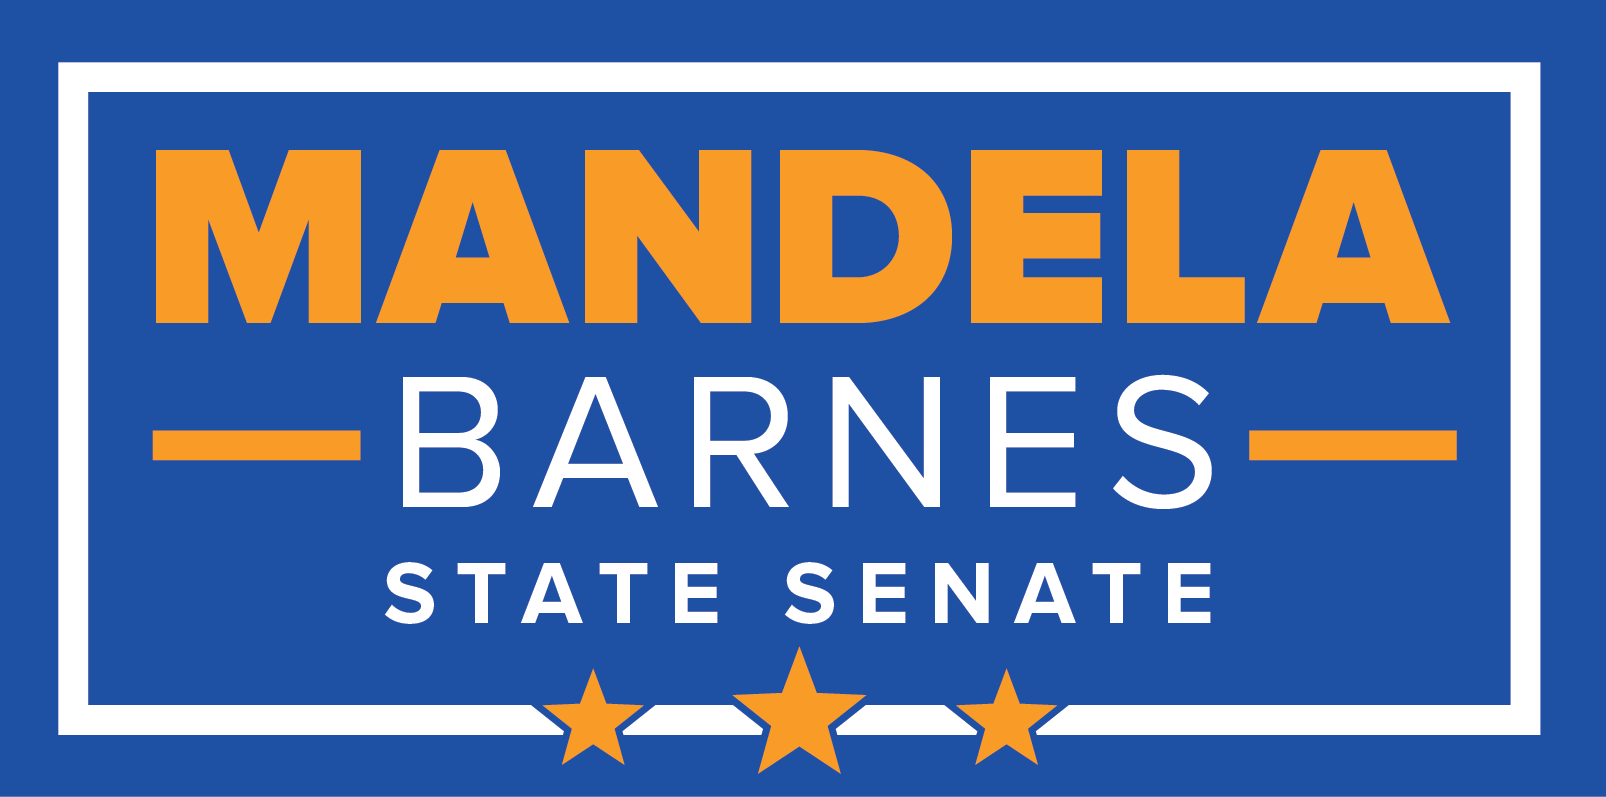 Mandela Barnes will put our community first by: Standing up to Scott Walker and his allies in the State Senate